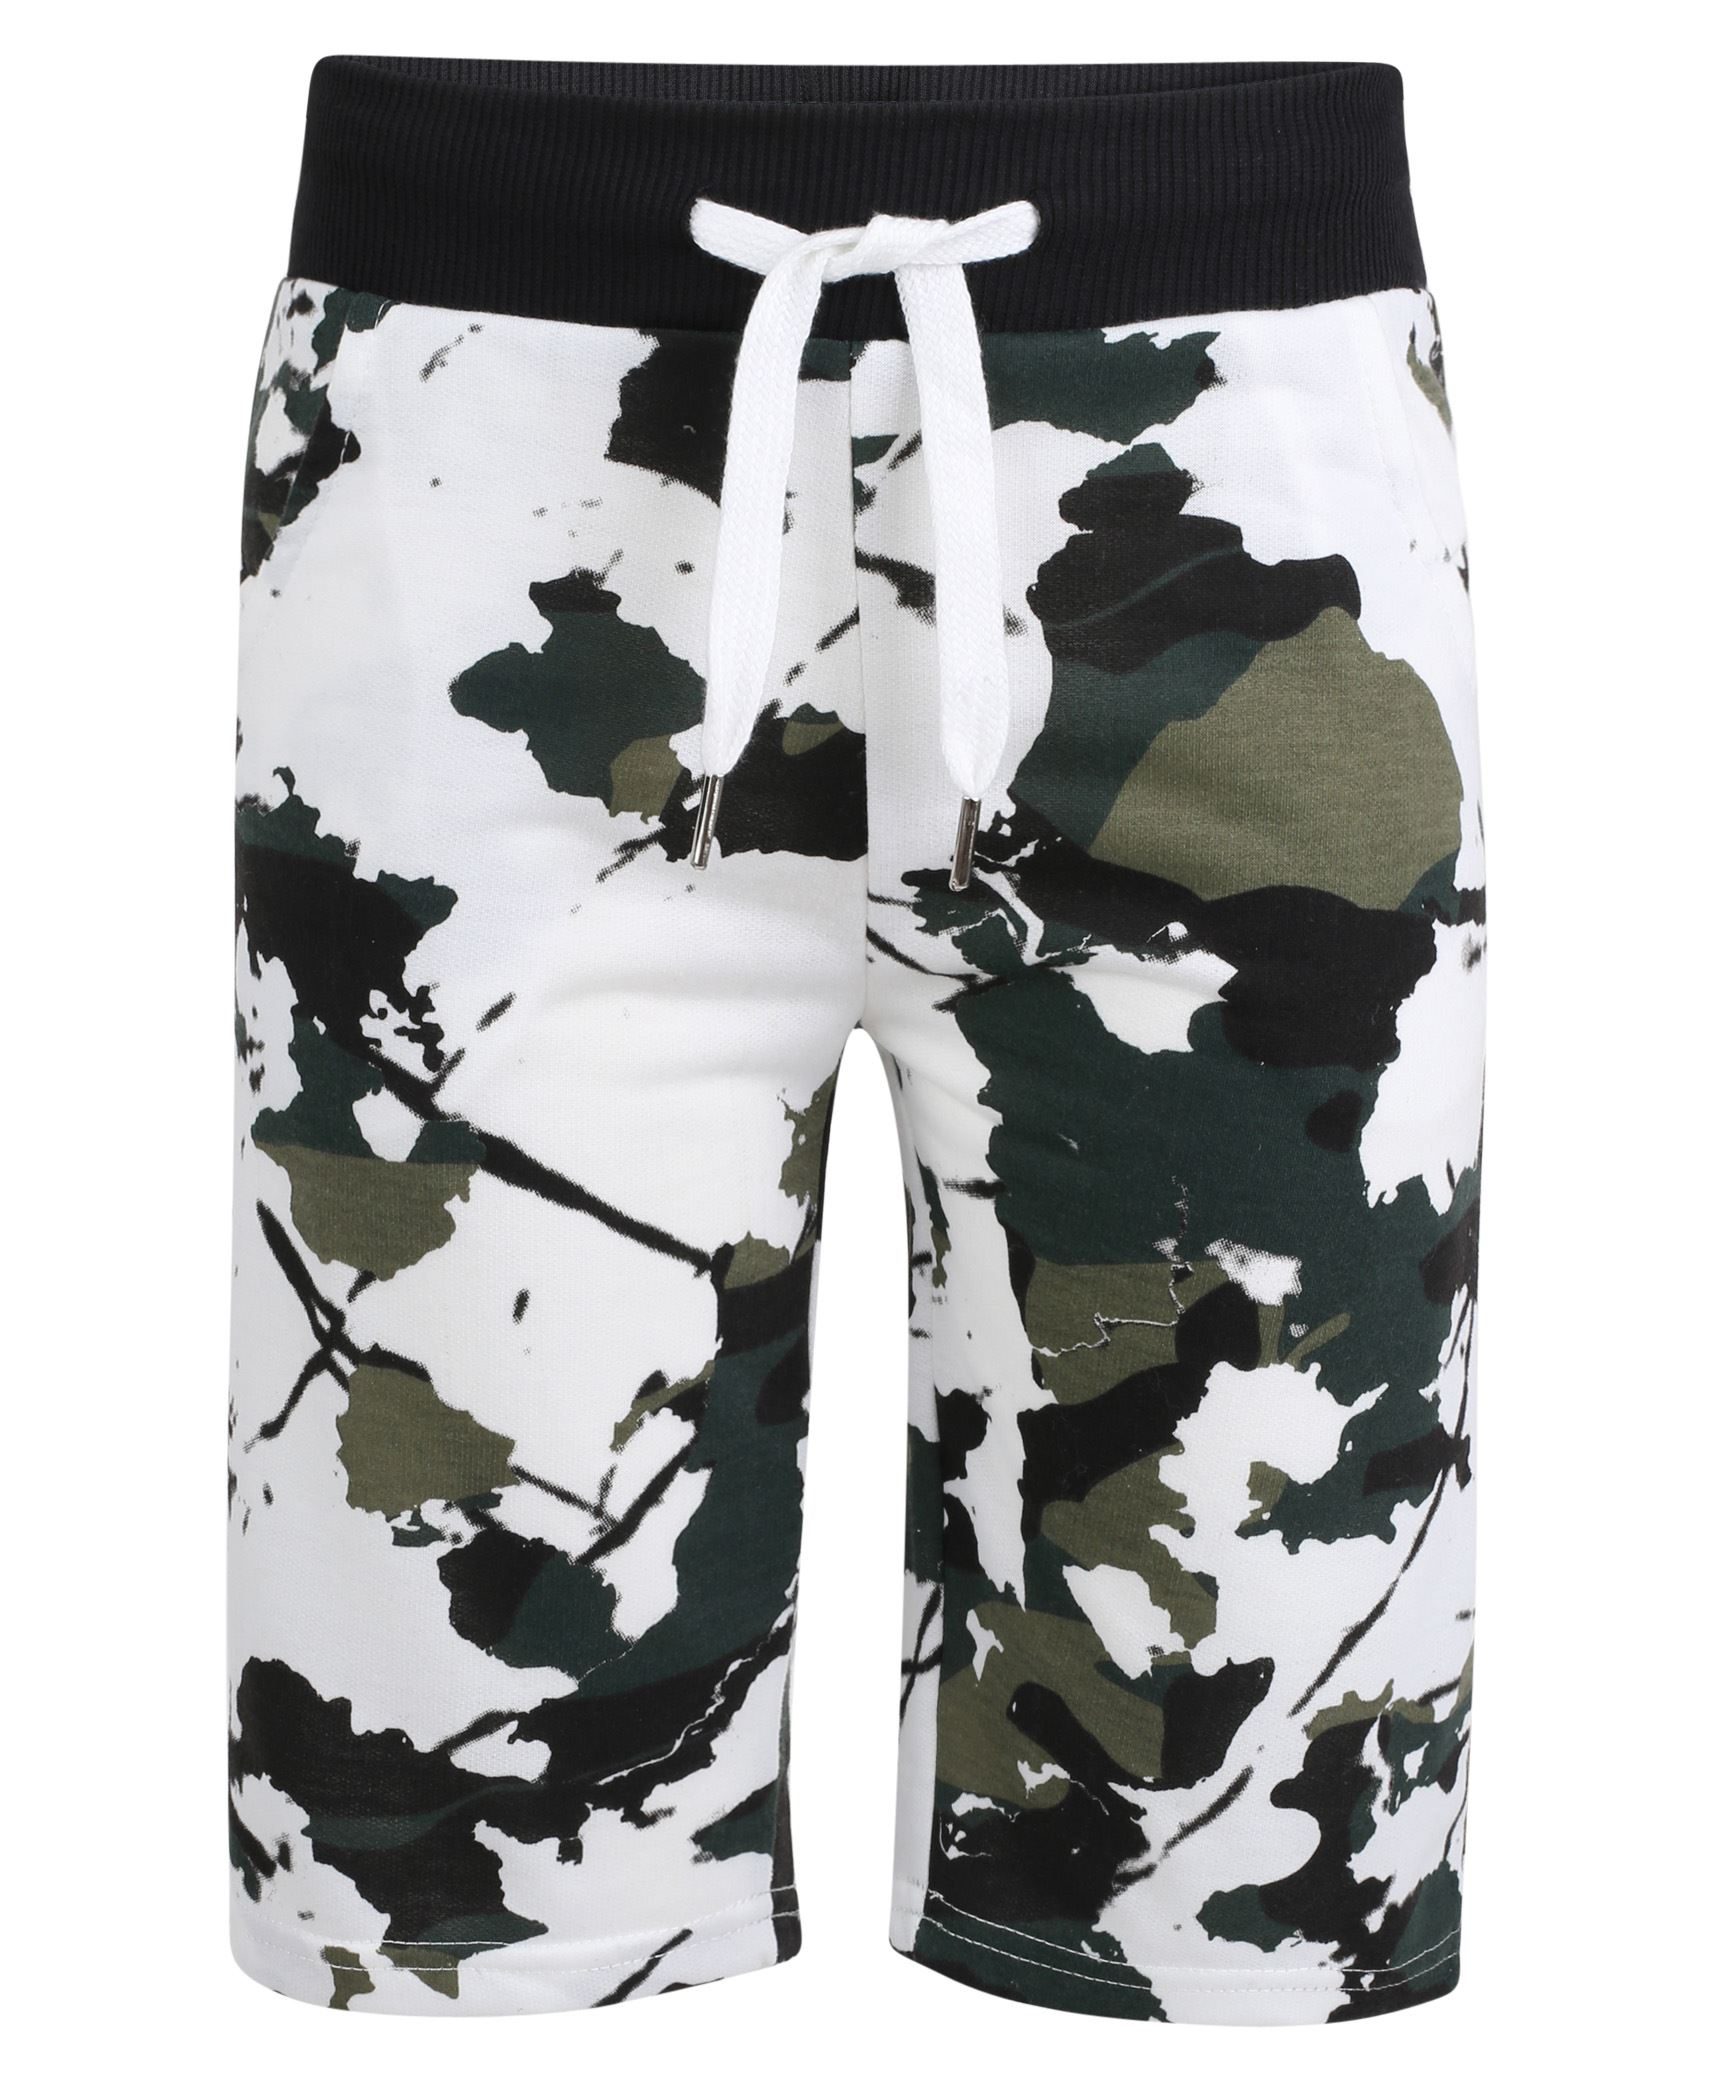 c66f0e8ea65 Lotmart Boys Jersey Shorts Camouflage Print Pattern in White 5-6 Years